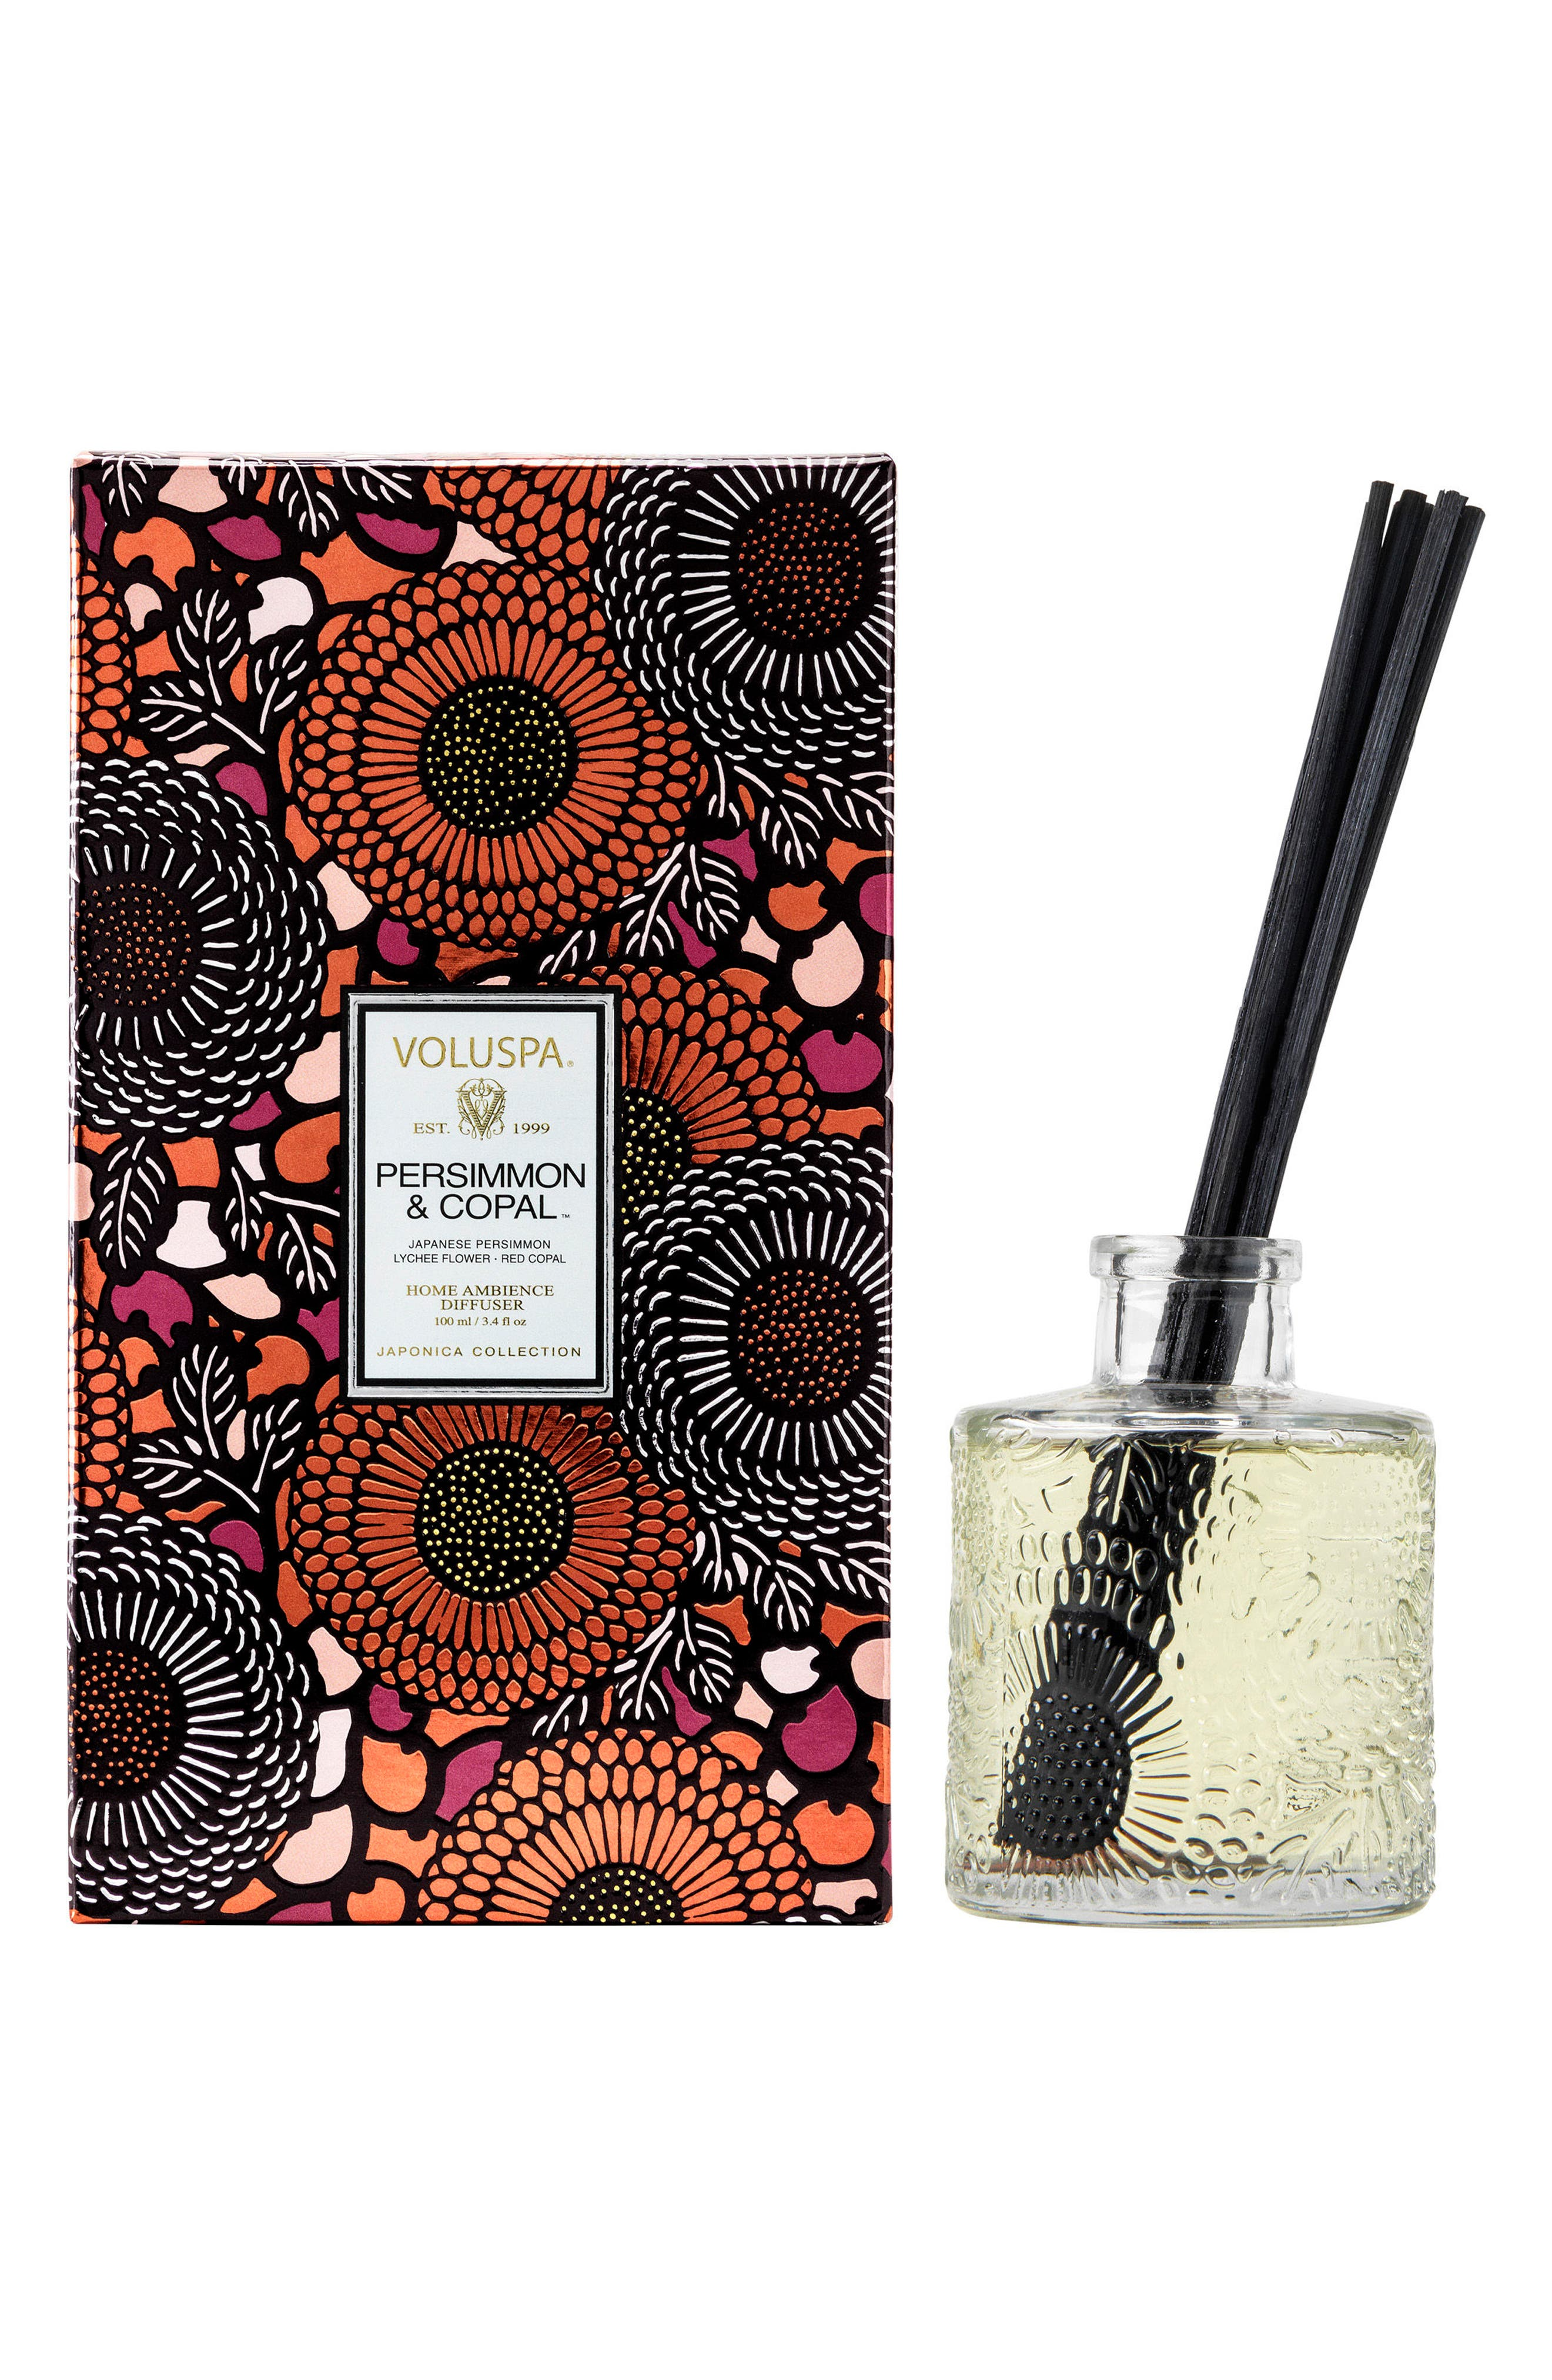 Japonica - Persimmon & Copal Home Ambiance Diffuser,                             Main thumbnail 1, color,                             650